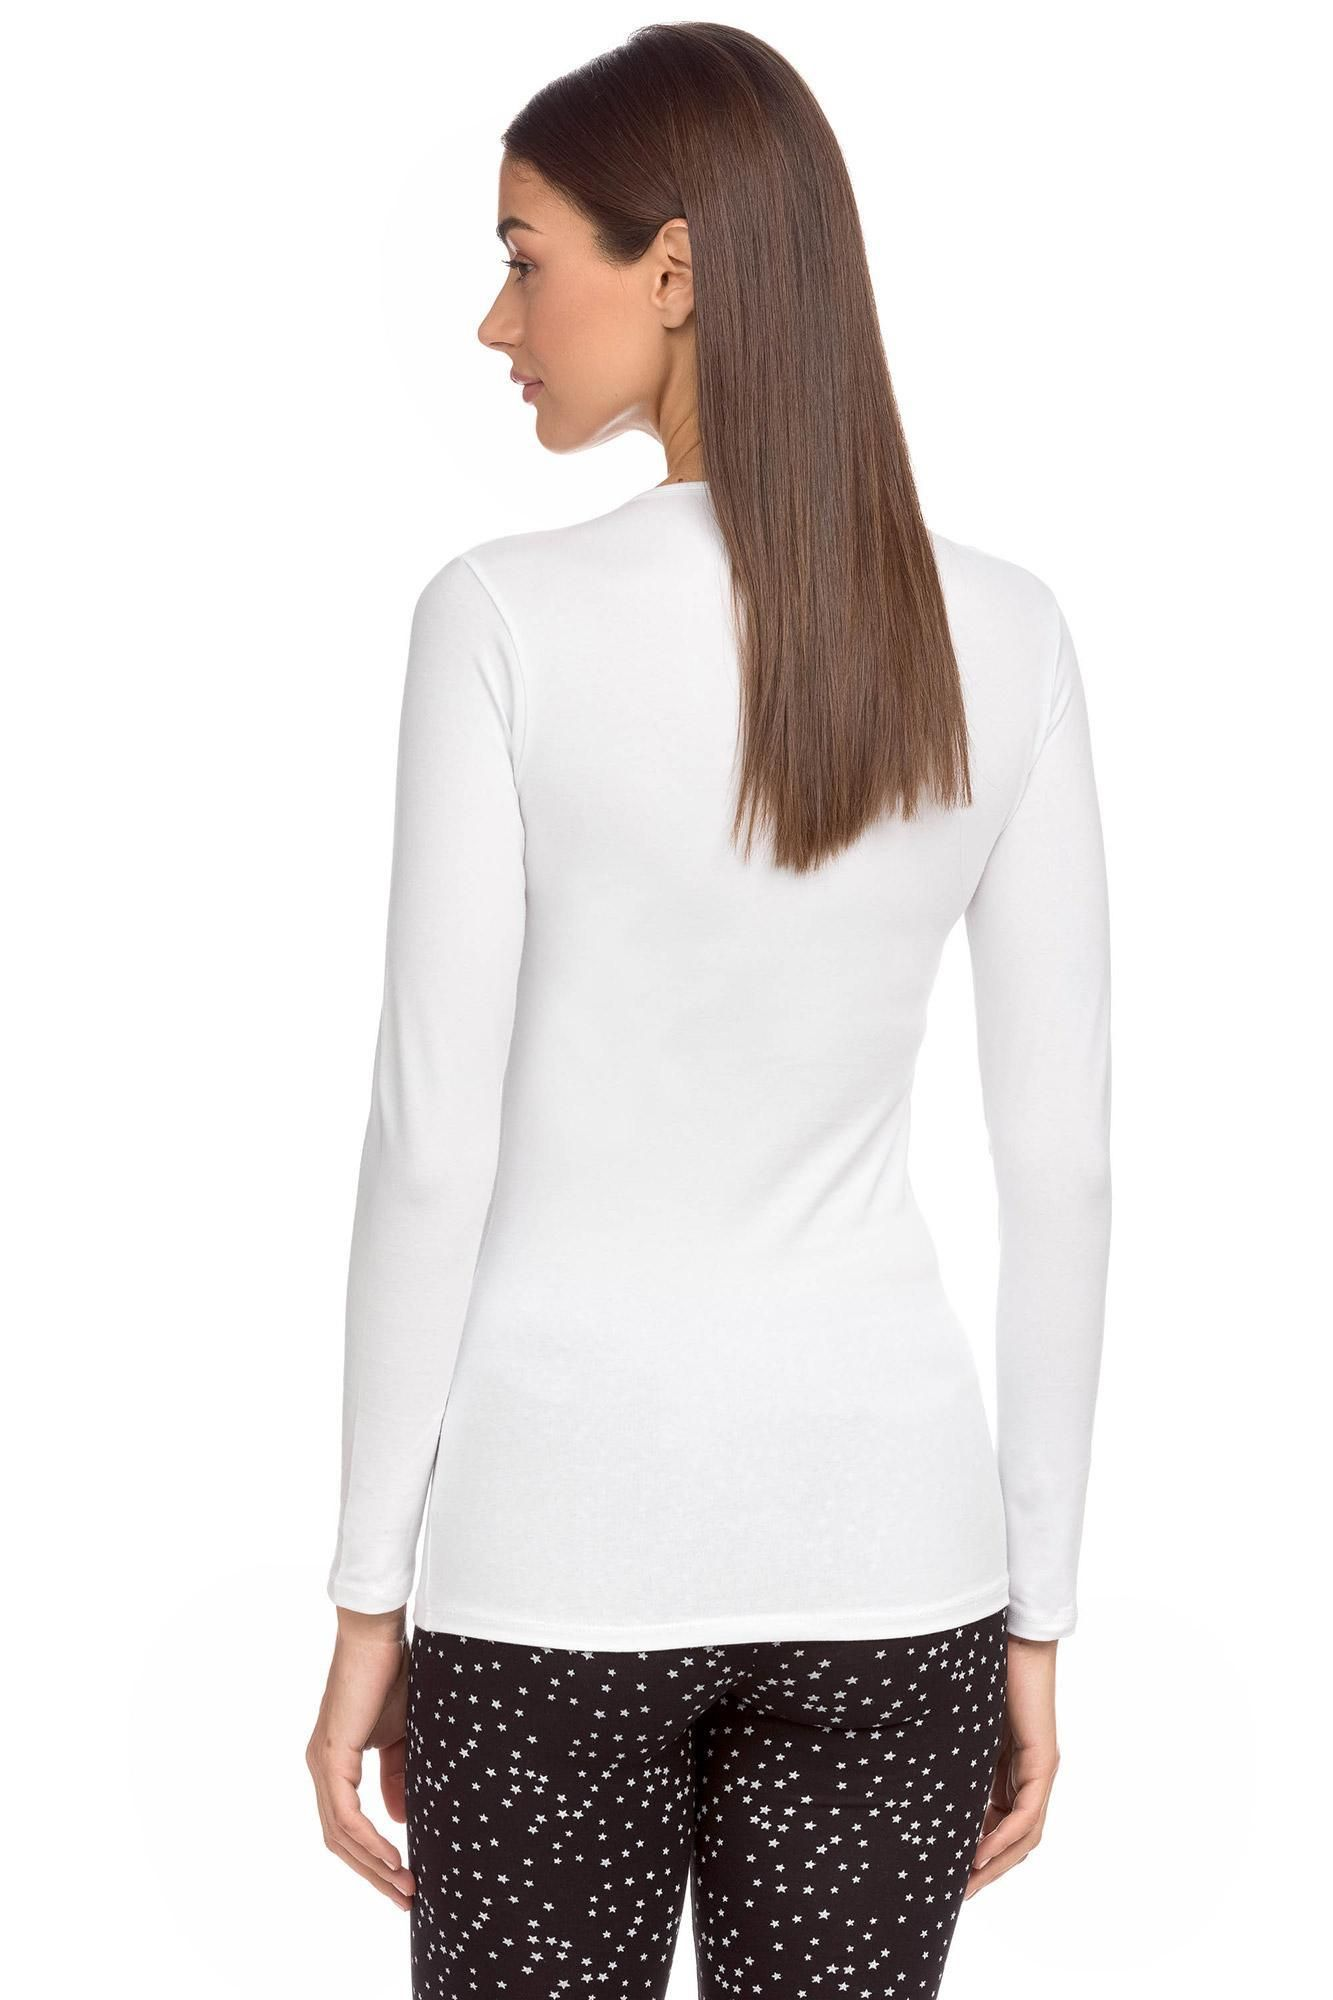 Women's vest with long sleeves